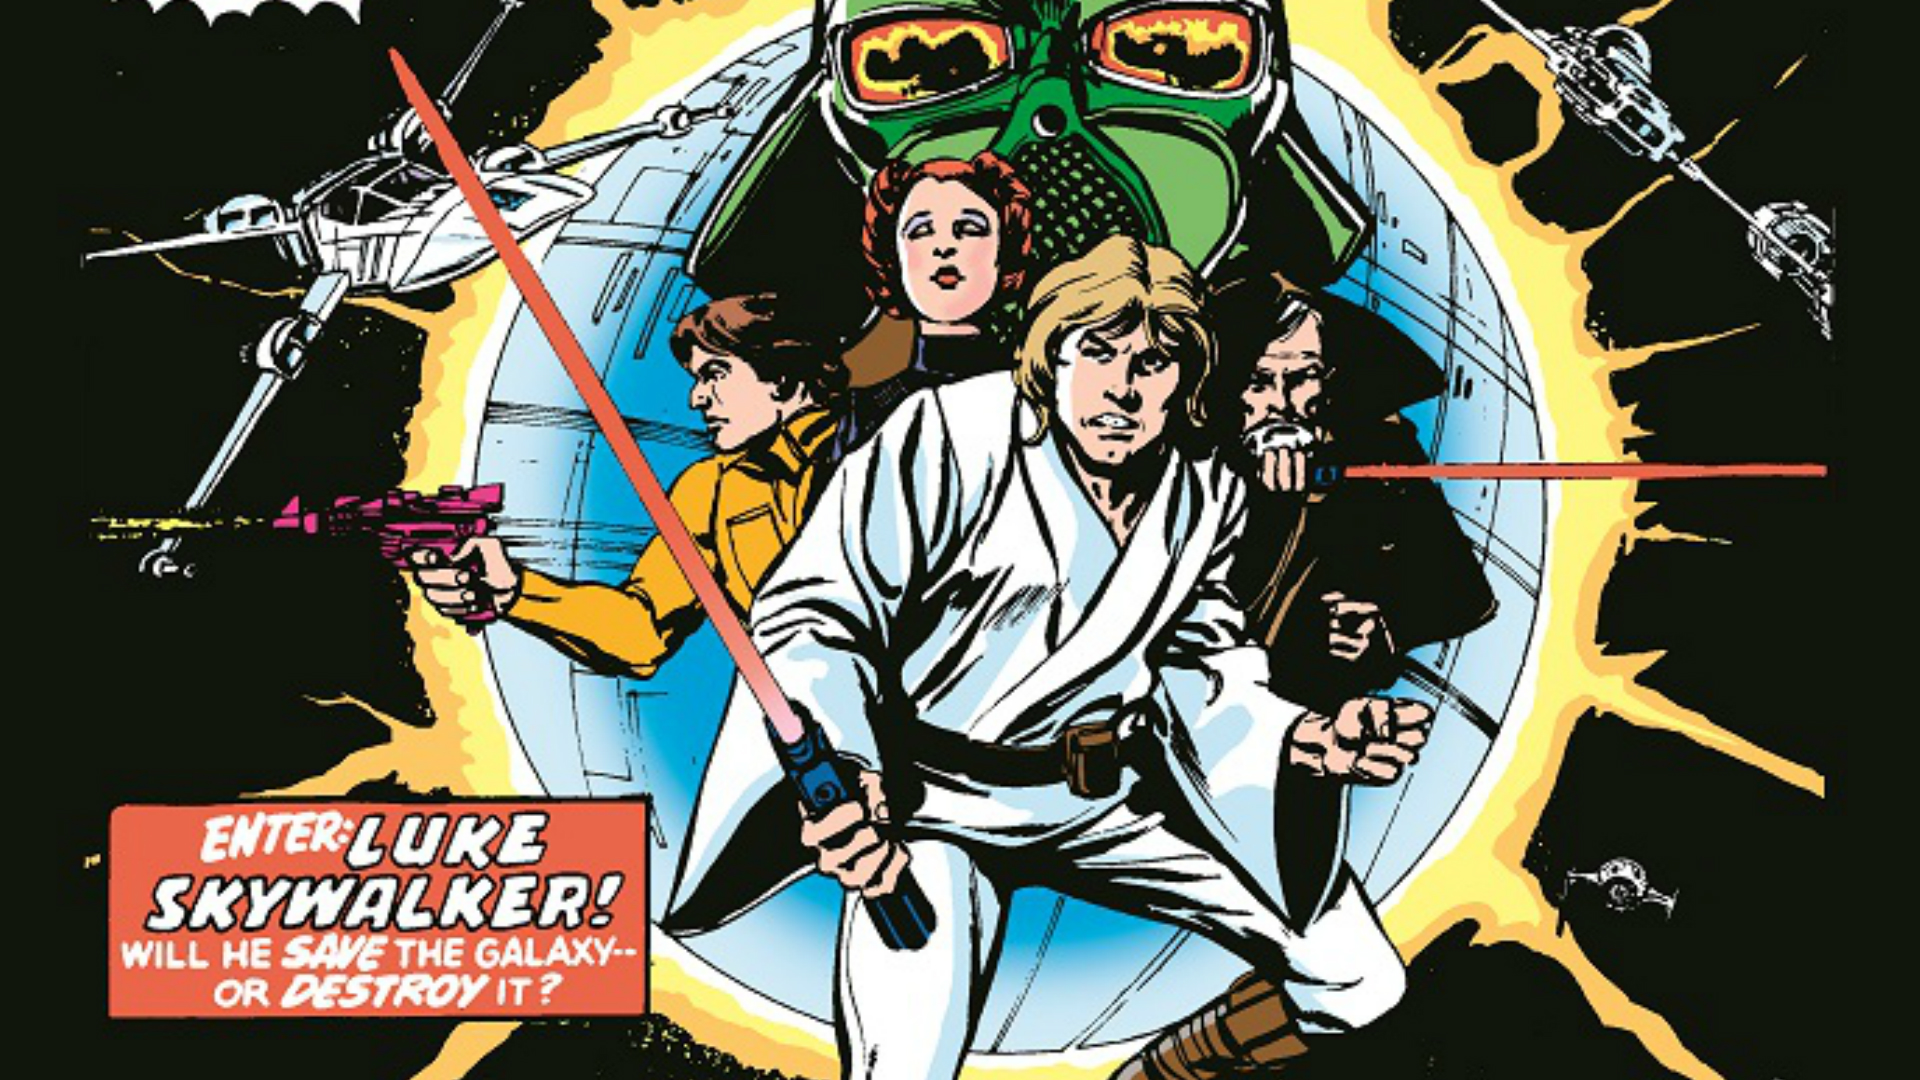 The first issue of Star Wars Comic